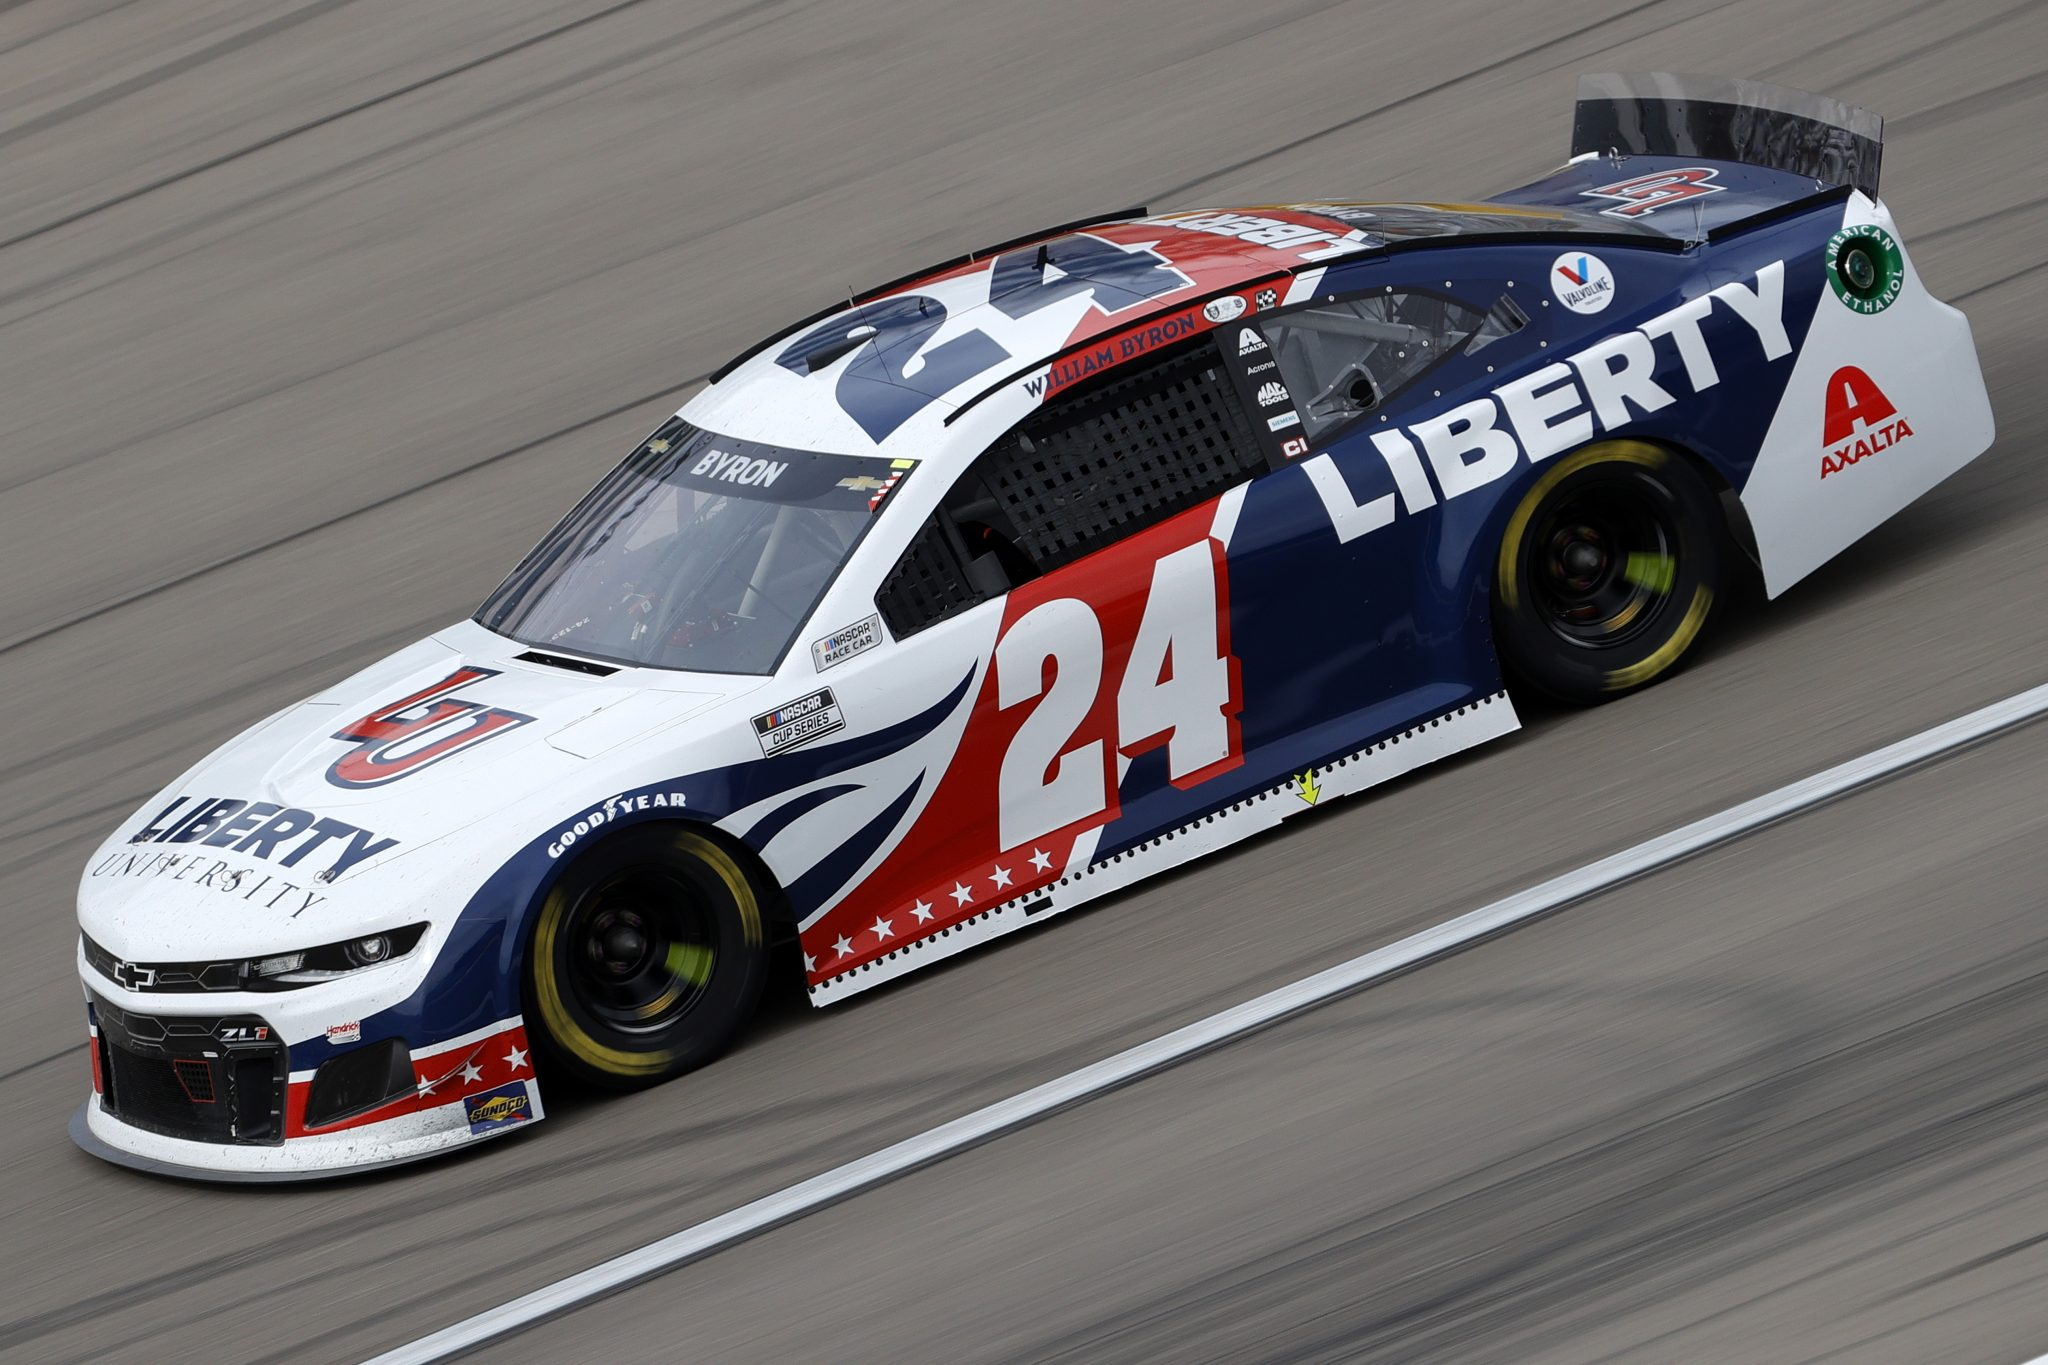 LAS VEGAS, NEVADA - MARCH 07: William Byron, driver of the #24 Liberty University Chevrolet, drives during the NASCAR Cup Series Pennzoil 400 presented by Jiffy Lube at the Las Vegas Motor Speedway on March 07, 2021 in Las Vegas, Nevada. (Photo by Chris Graythen/Getty Images) | Getty Images